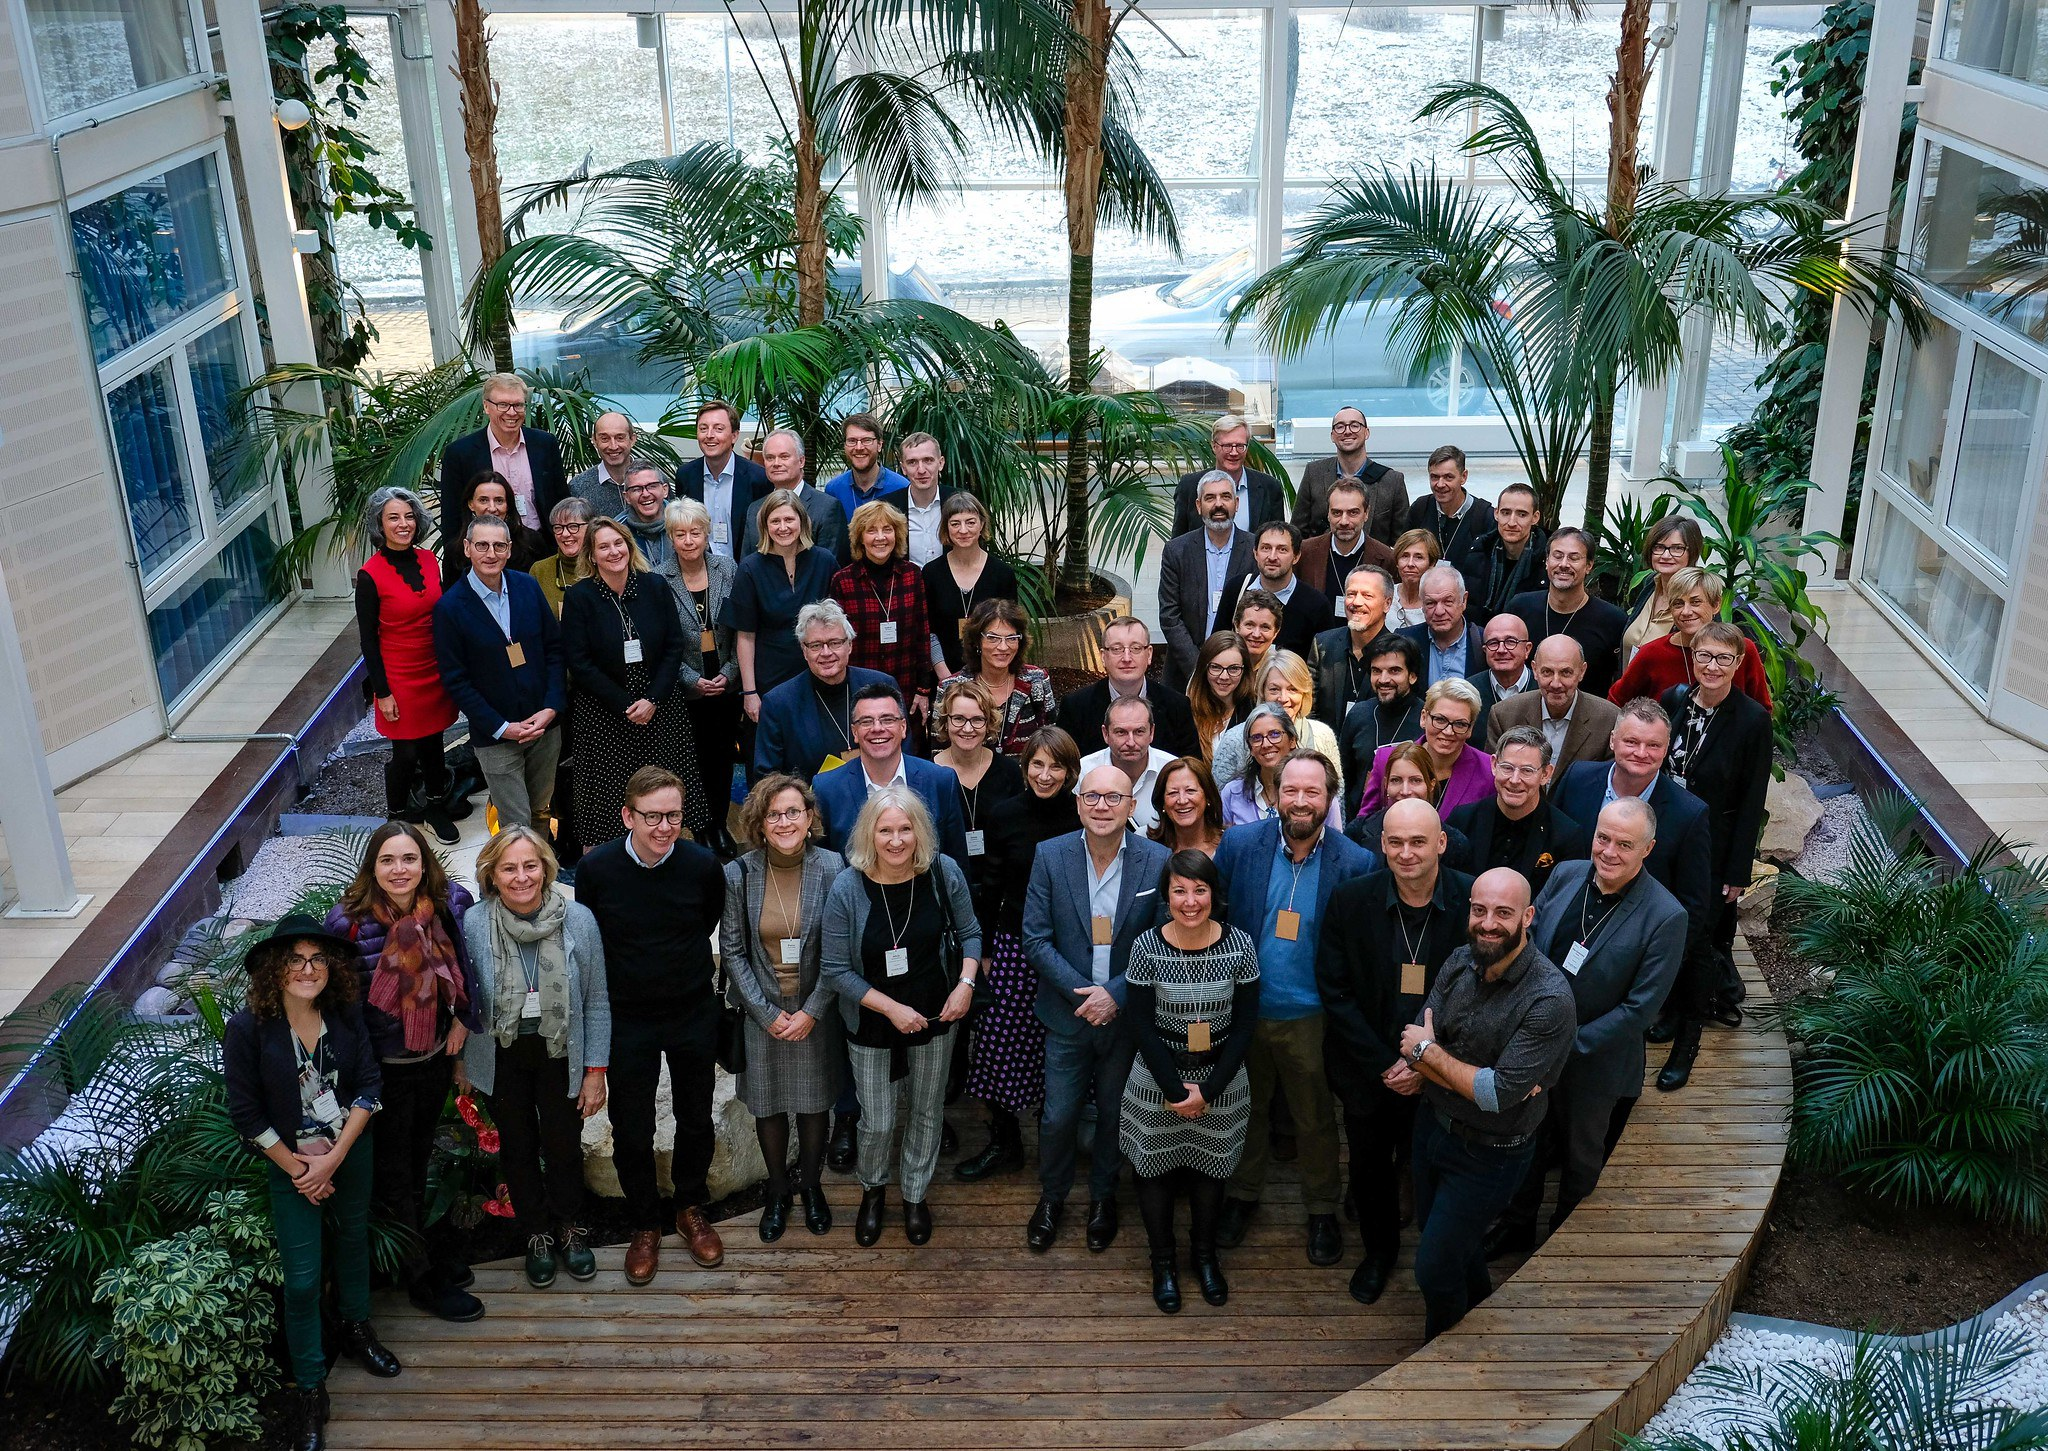 Participants of the 2019 Directors Forum in Trondheim, Norway.